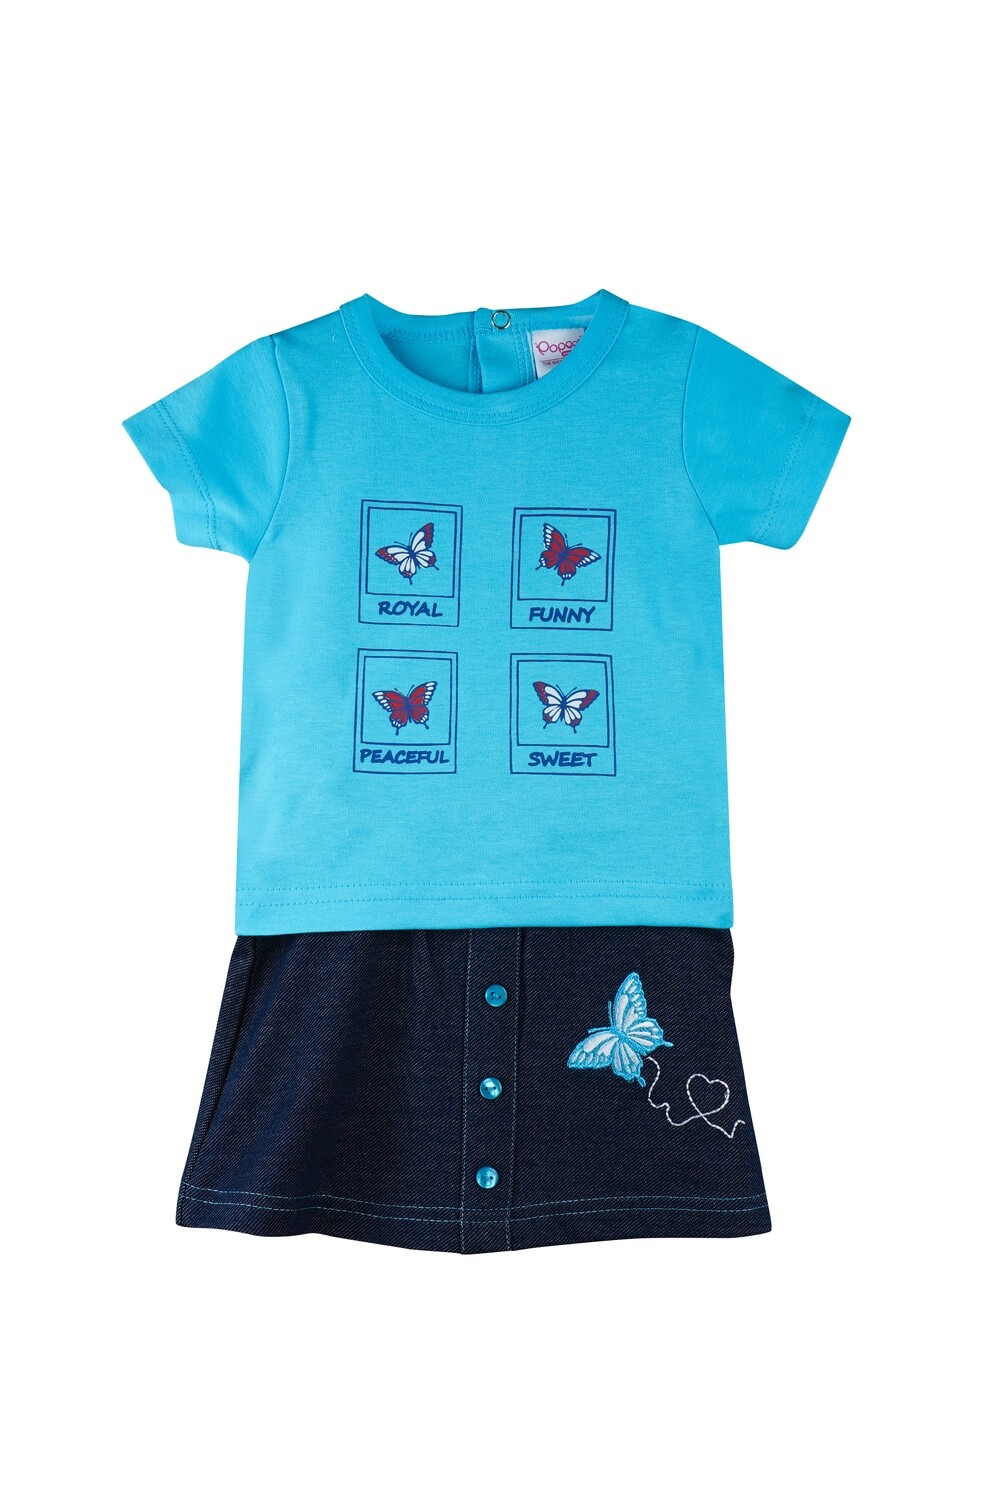 Story Bachelor Blue Half Sleeves Round Neck T-Shirt with Butterfly Embroidered Skirt for Girls